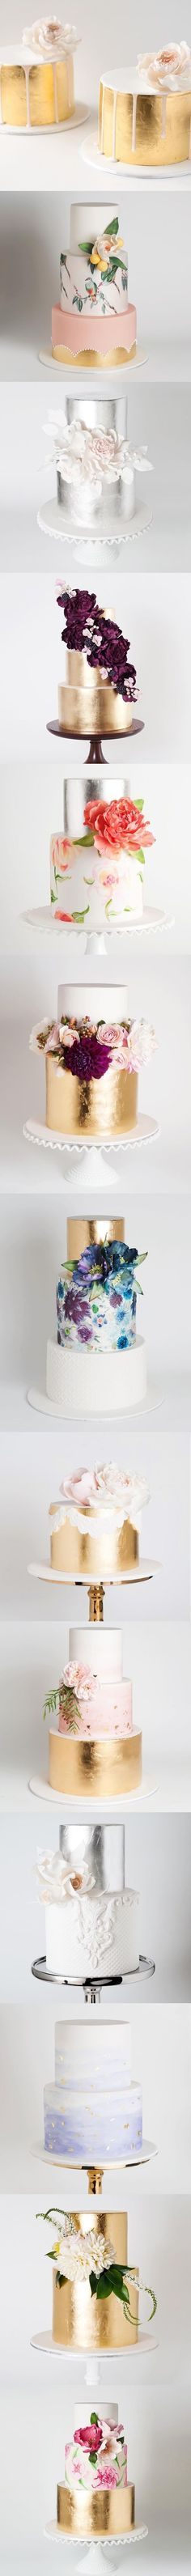 metallic cakes - my kind of wedding cakes! Bring on the gold :)